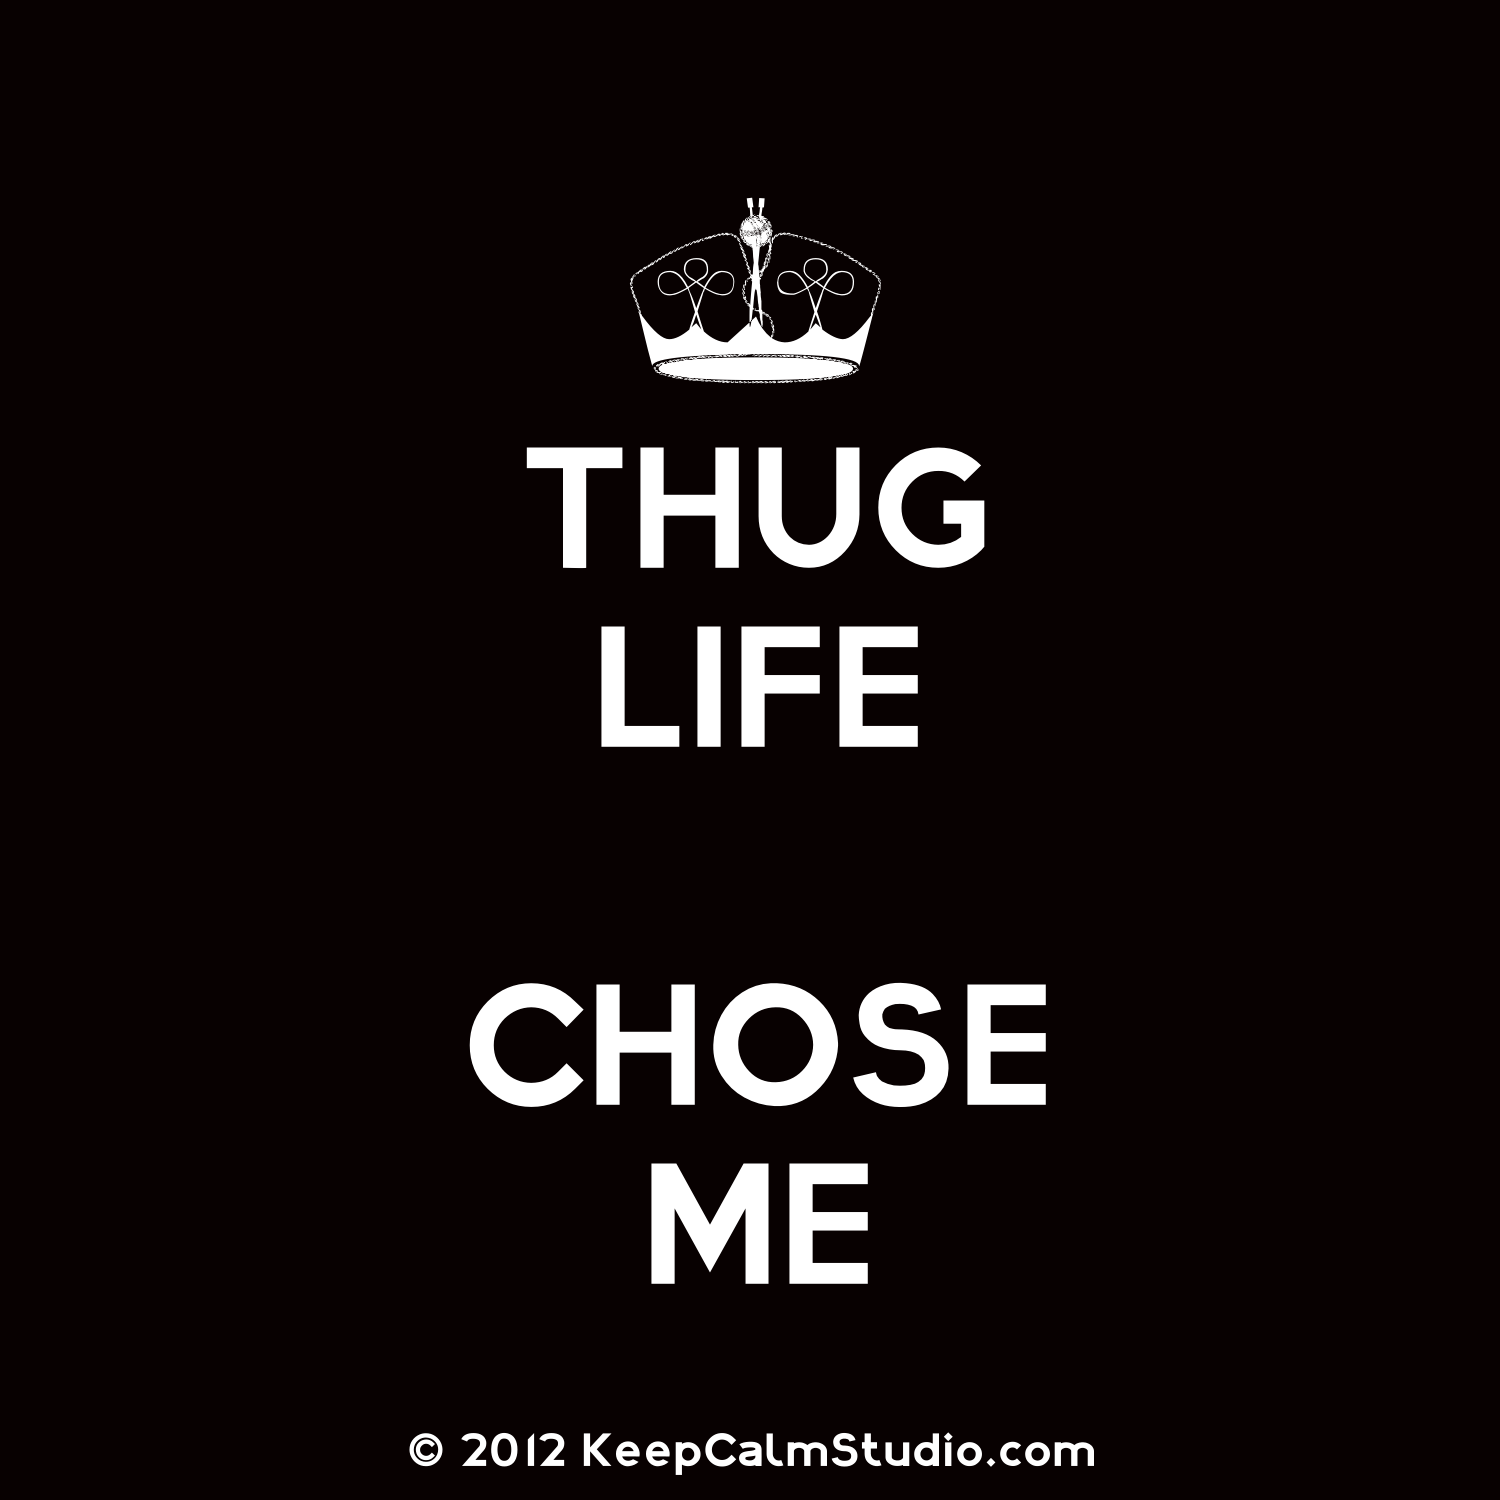 Quotes about Thug Life (5 quotes)